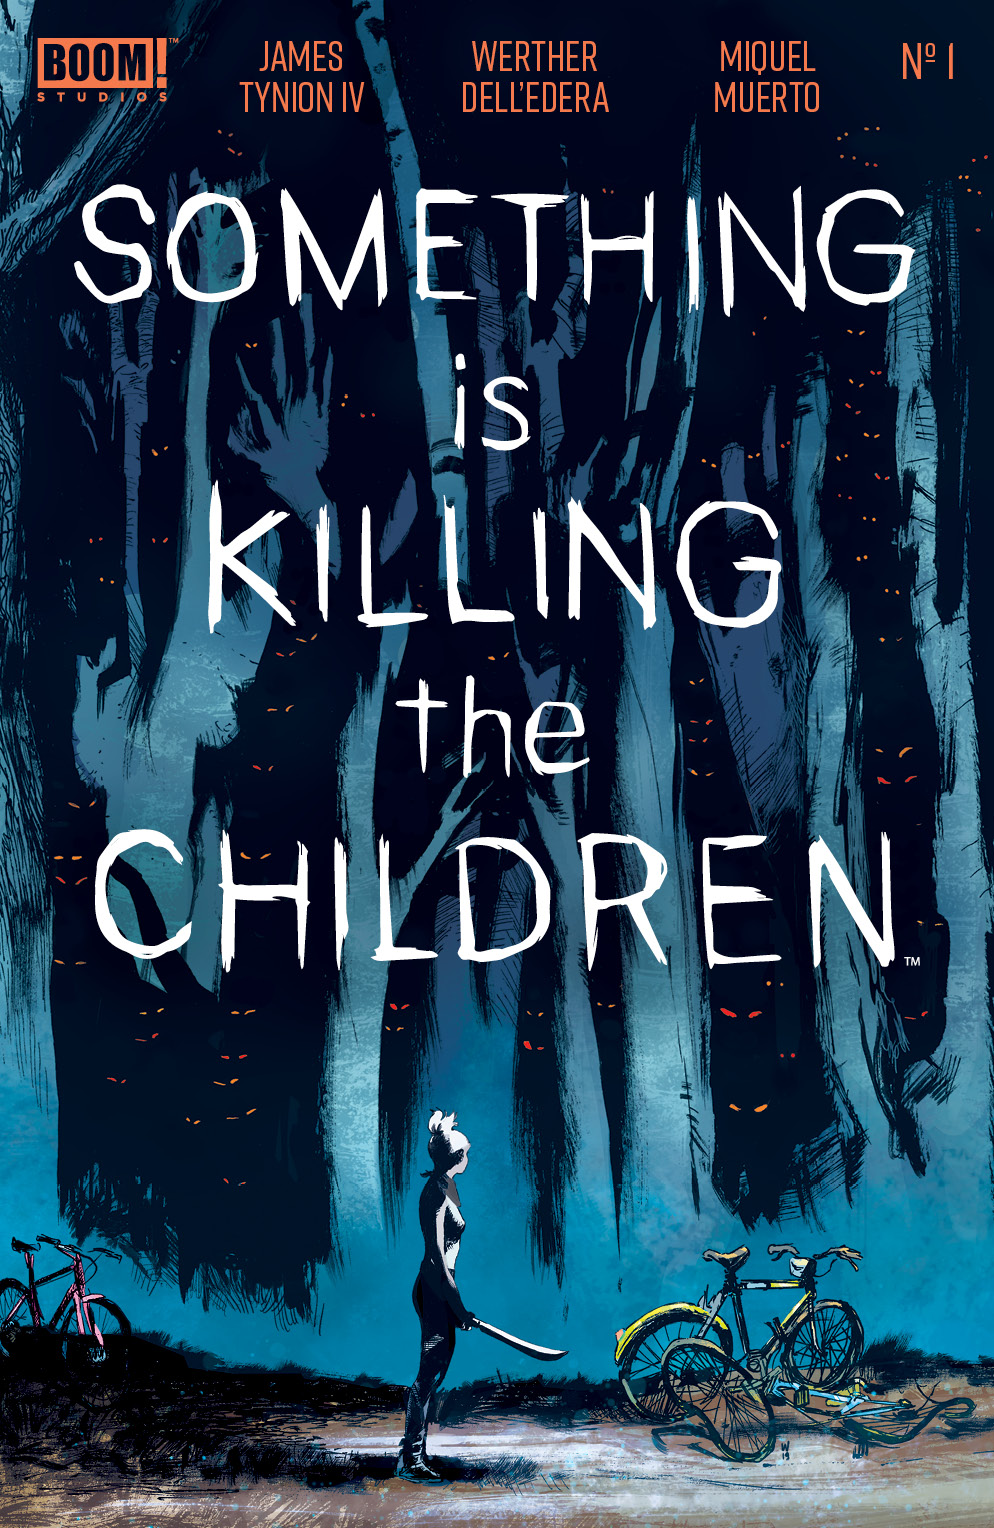 Something is Killing the Children, Volume One by Werther Dell'Edera, Miguel Muerto, James Tynion IV